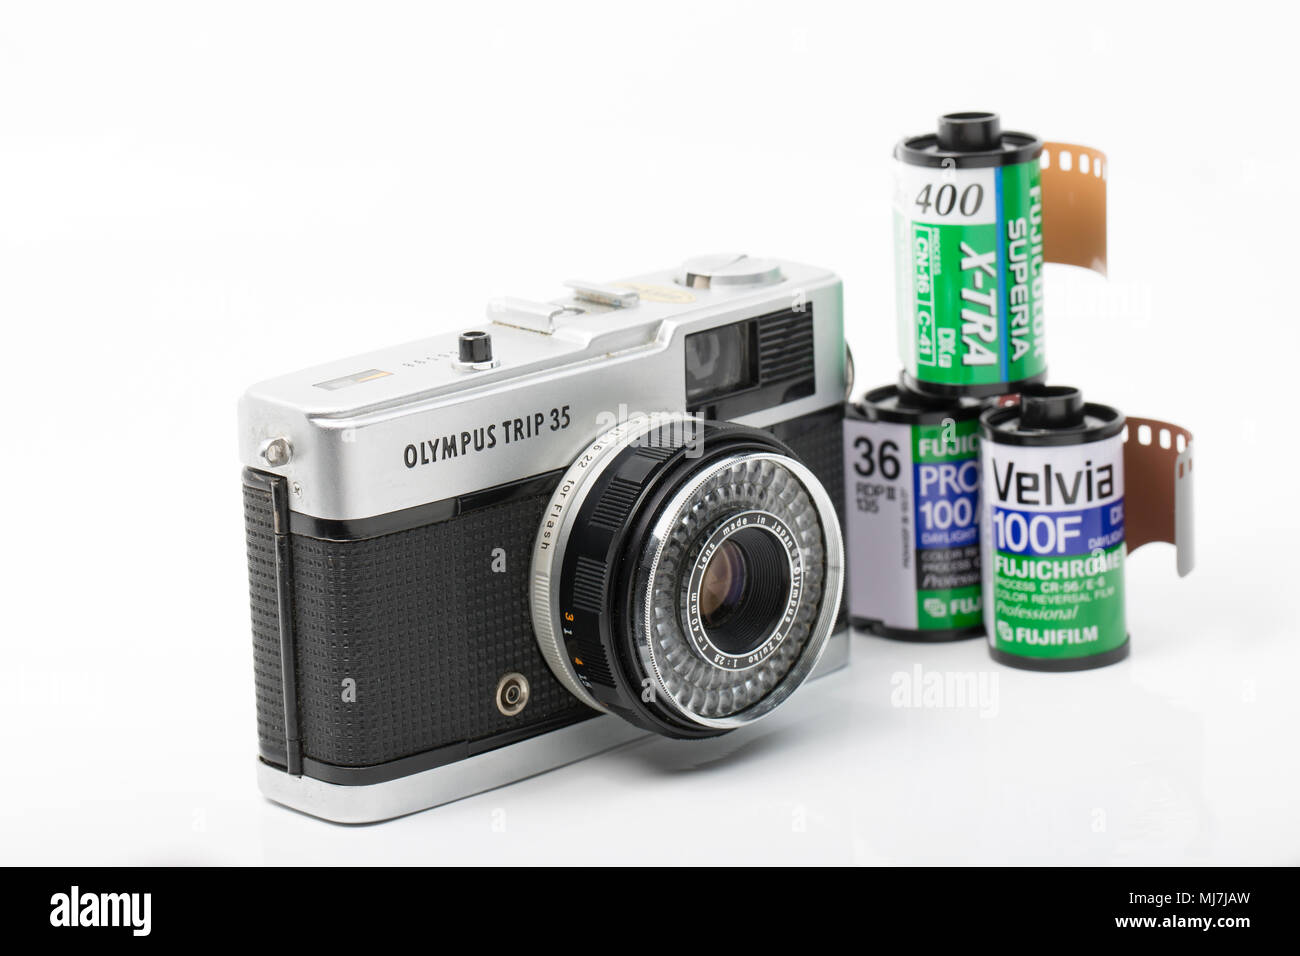 A working Olympus Trip 35 film camera bought for £1 from jumble sale in Dorset England UK. Production of the camera ran from 1967-1984 and it was fitt - Stock Image